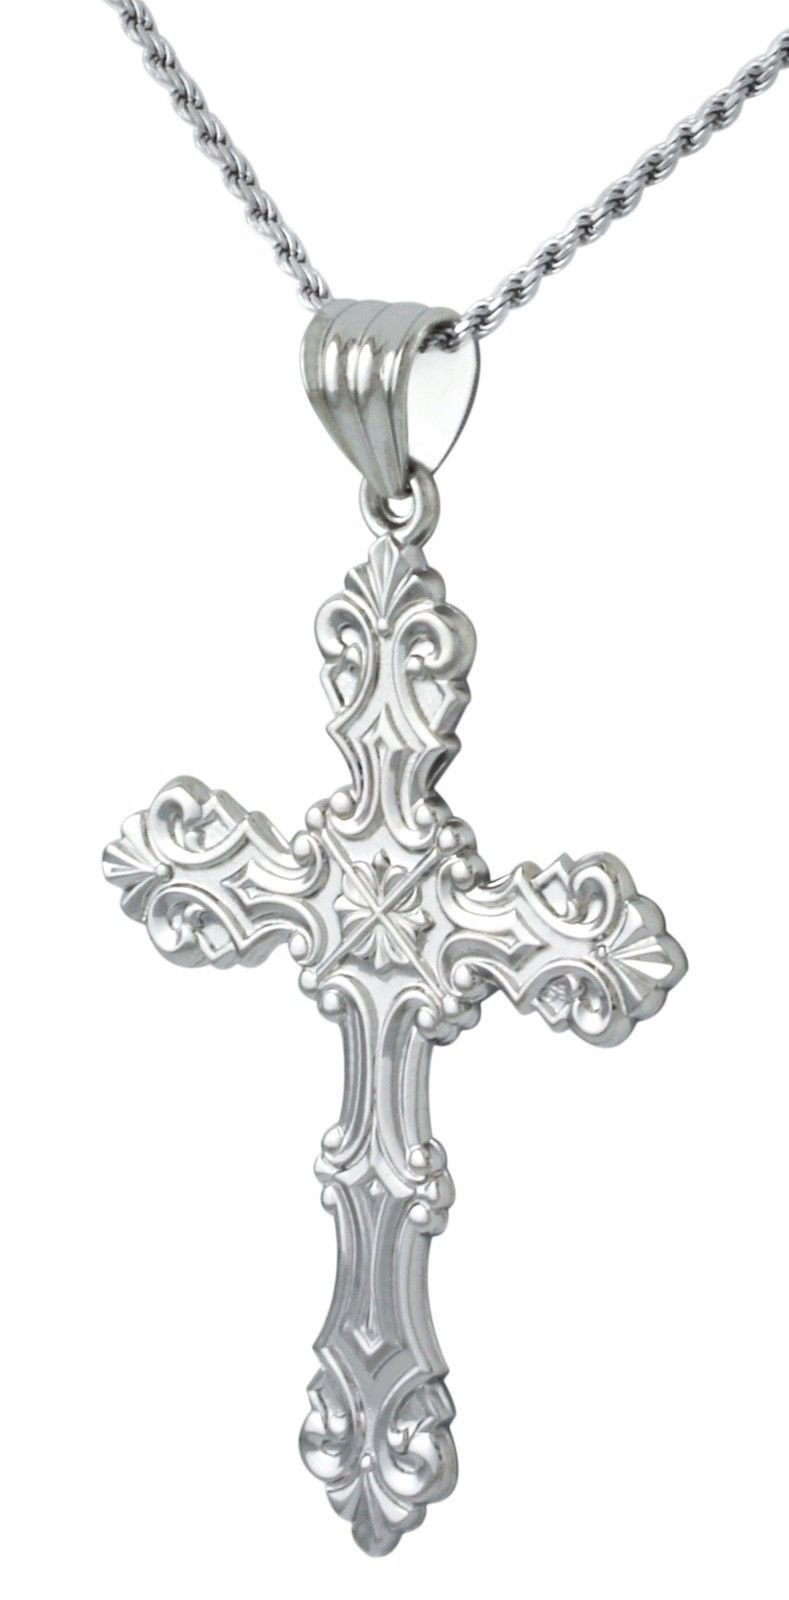 New Large 2in 0.925 Sterling Silver Ornate Cross Religious Pendant 3.0mm Figaro Necklace, 20'' by US Jewels And Gems (Image #1)